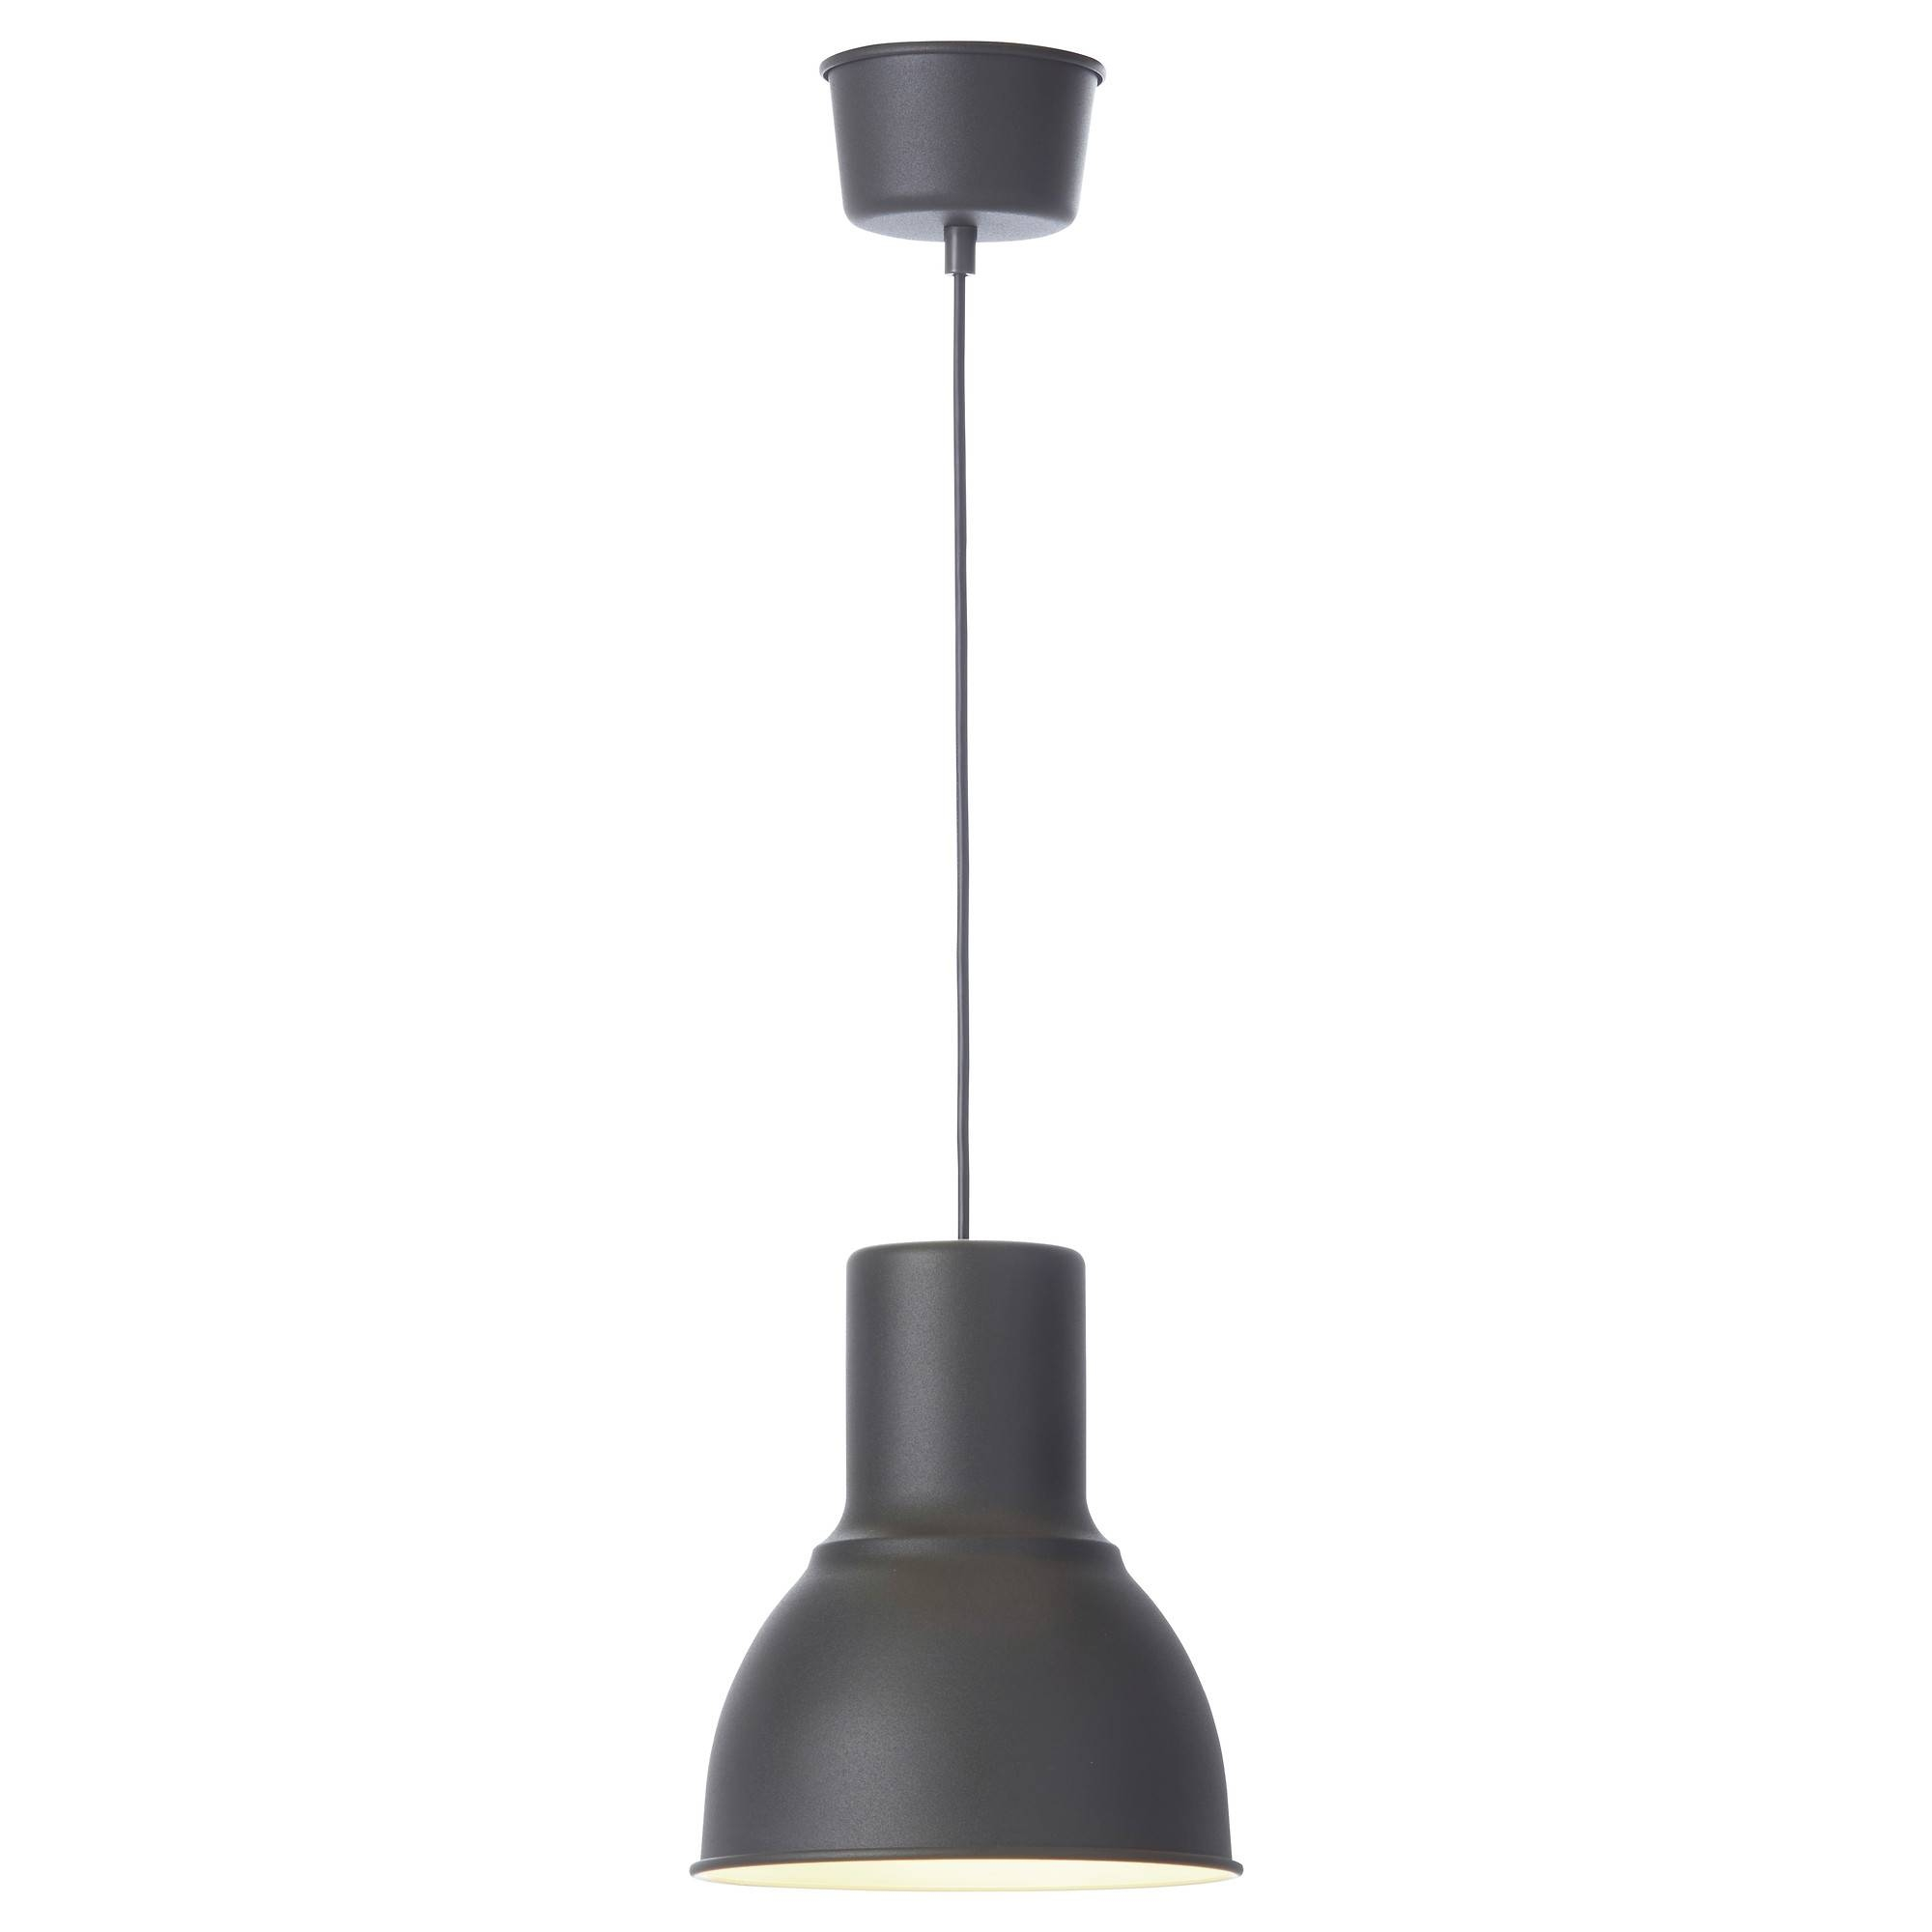 Hektar Pendant Lamp Dark Grey 22 Cm - Ikea throughout Ikea Hanging Lights (Image 7 of 15)